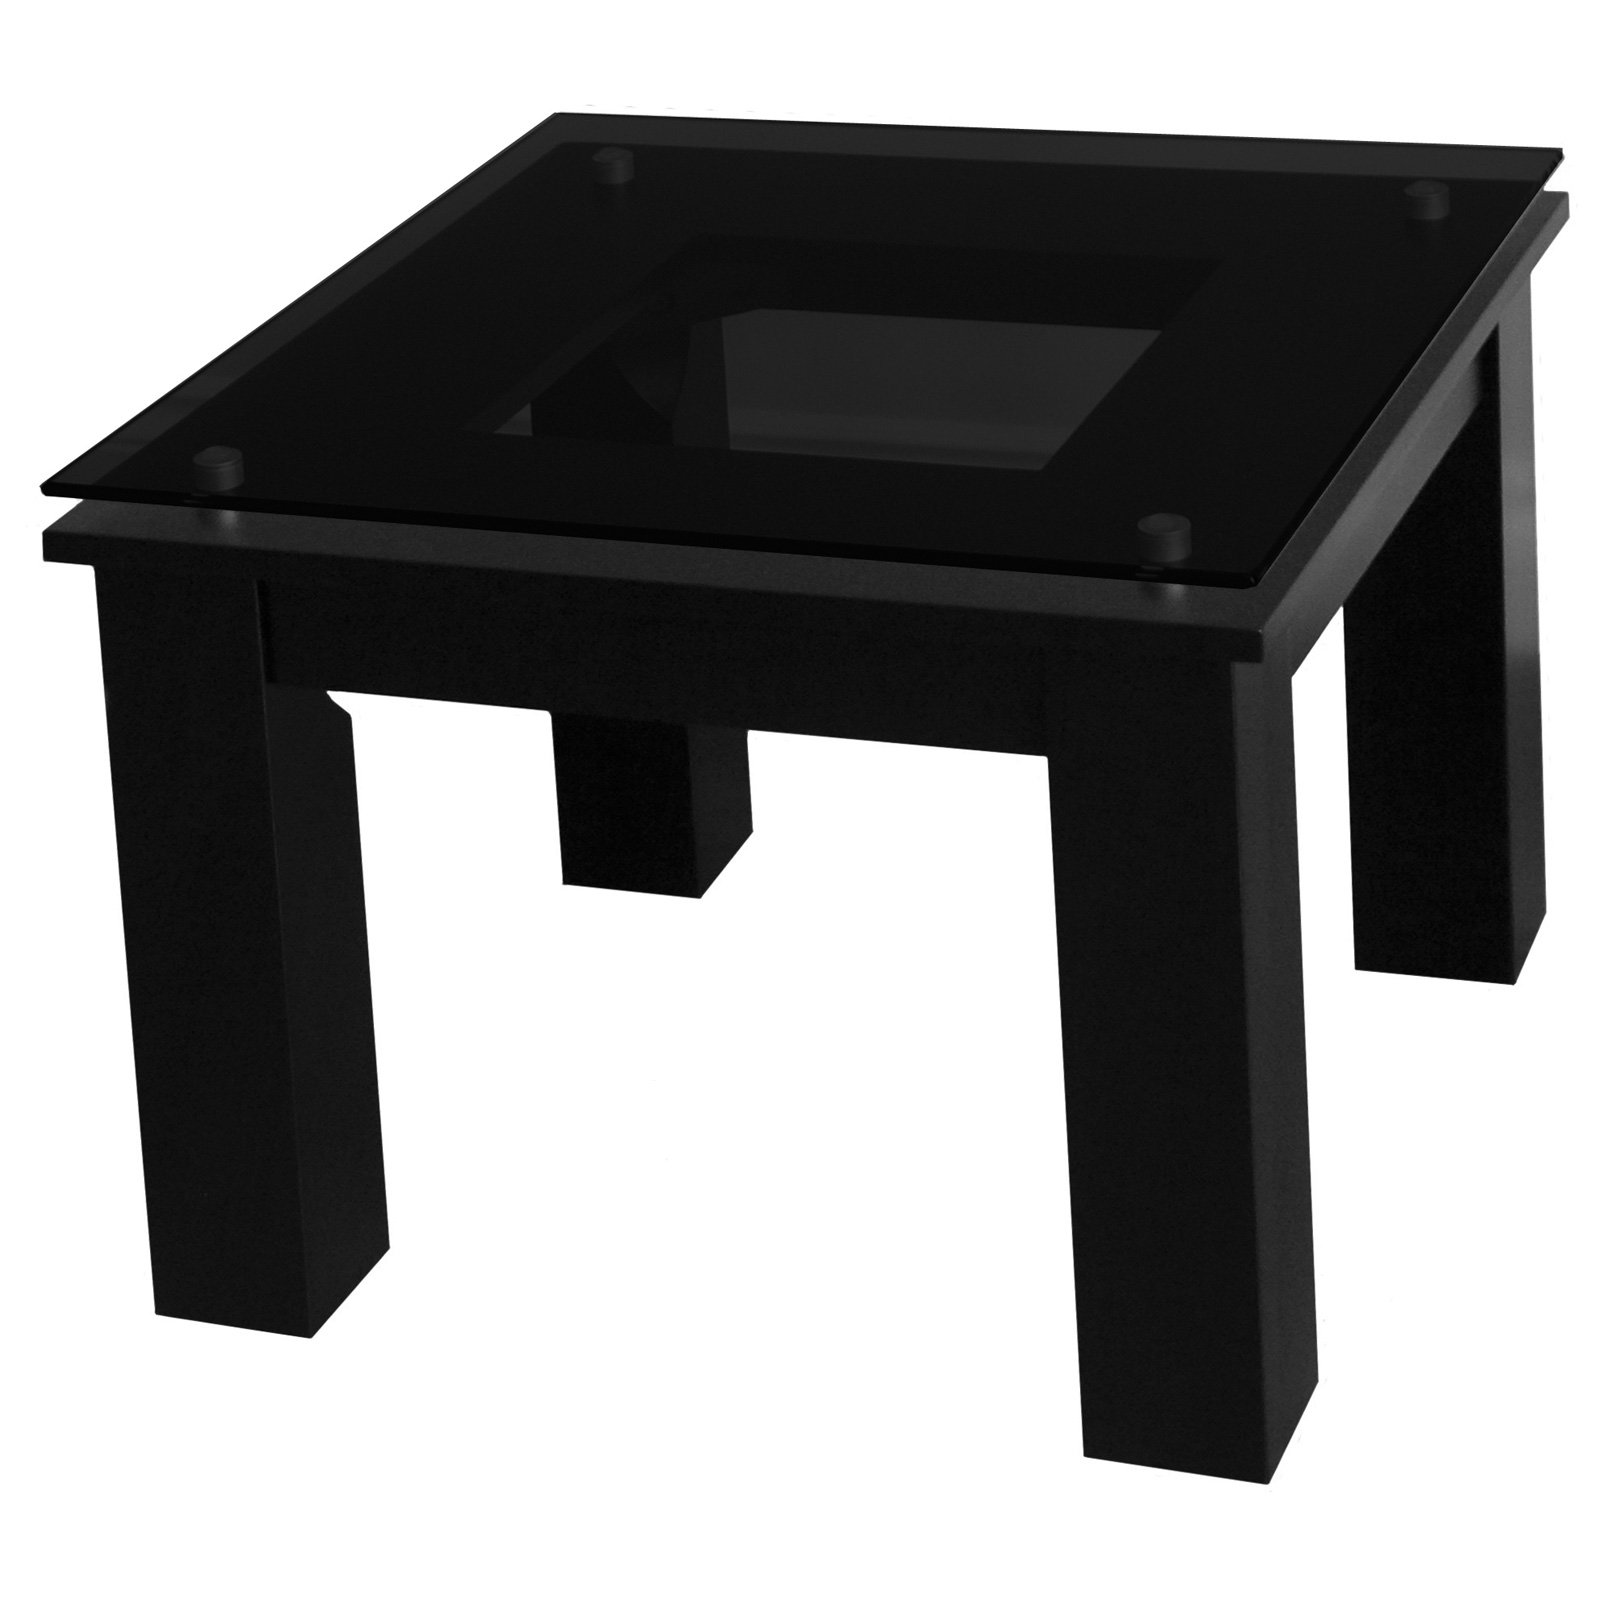 plateau contemporary end table black large modern metal wooden tables for living room kmart better homes and gardens inch round glass top patio ethan allen wick rustic industrial